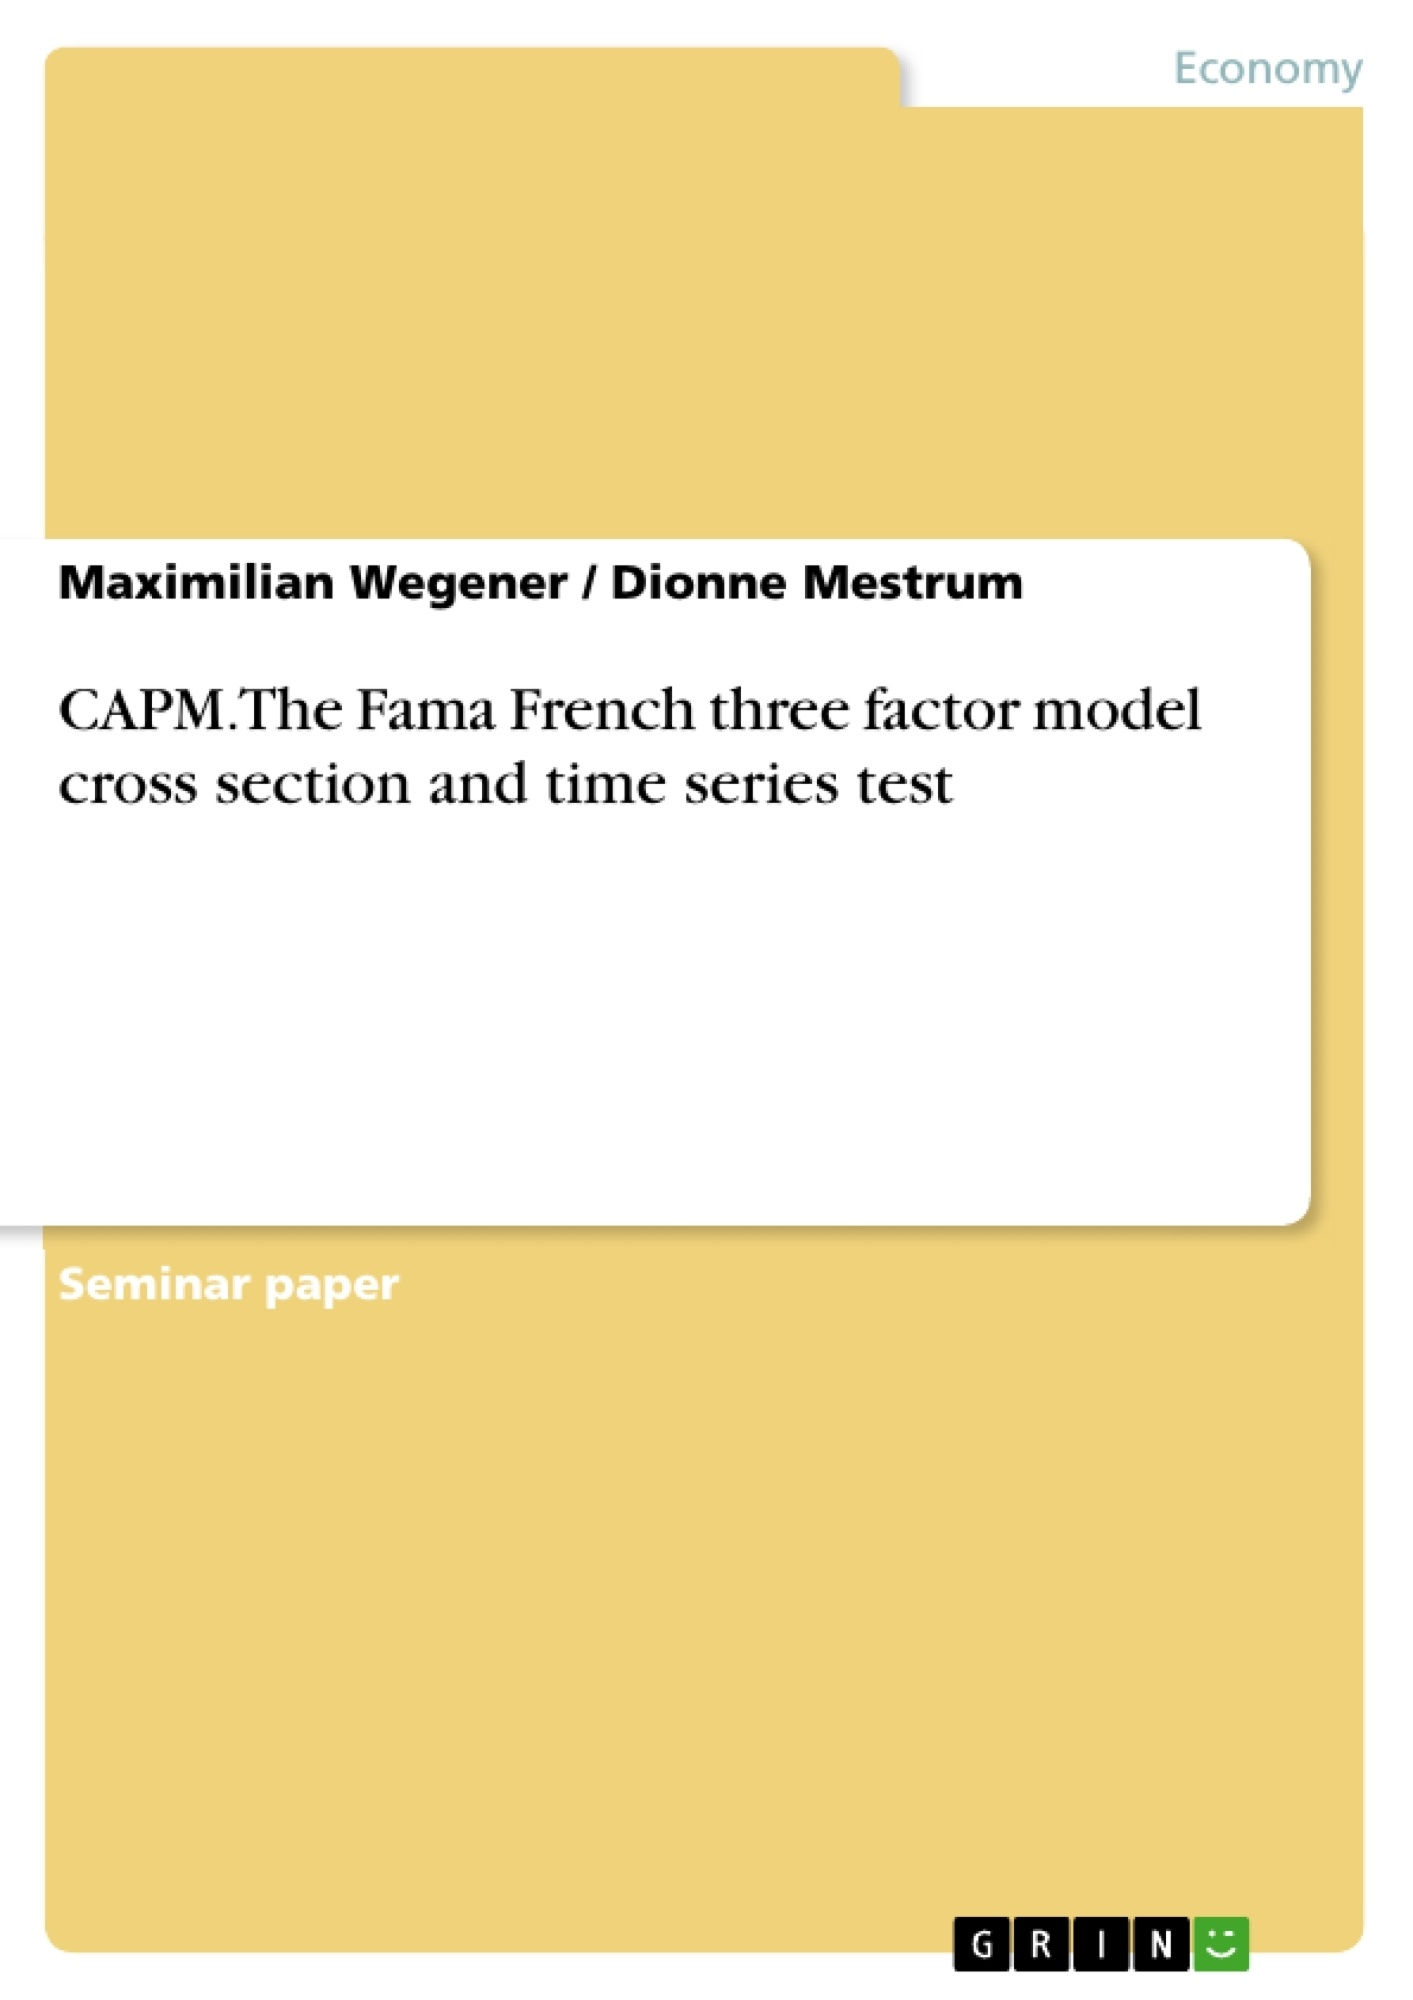 Title: CAPM. The Fama French three factor model cross section and time series test